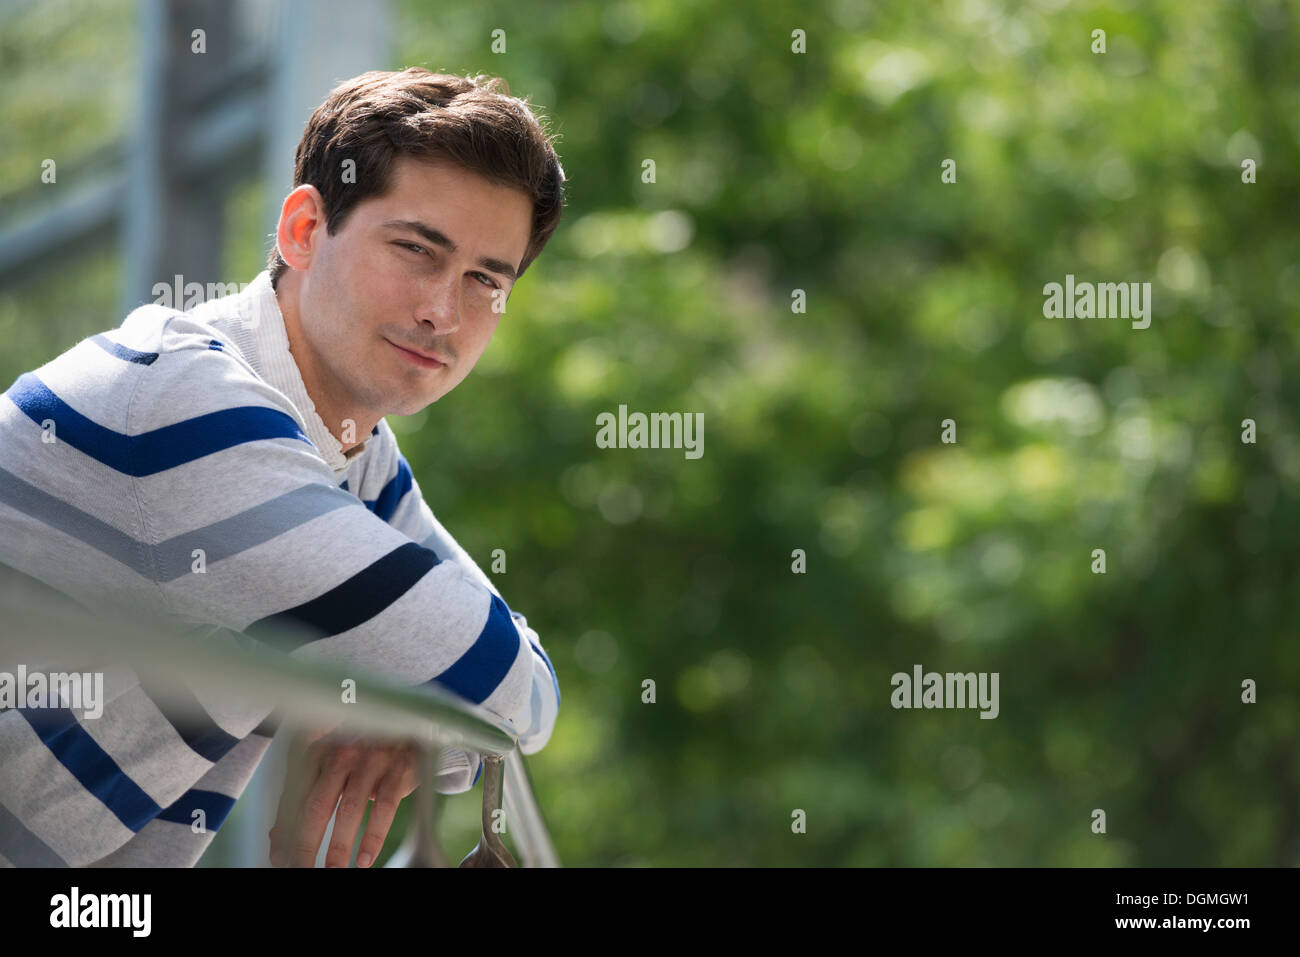 Summer. Business people. A man leaning on a railing relaxing. Off grid. - Stock Image